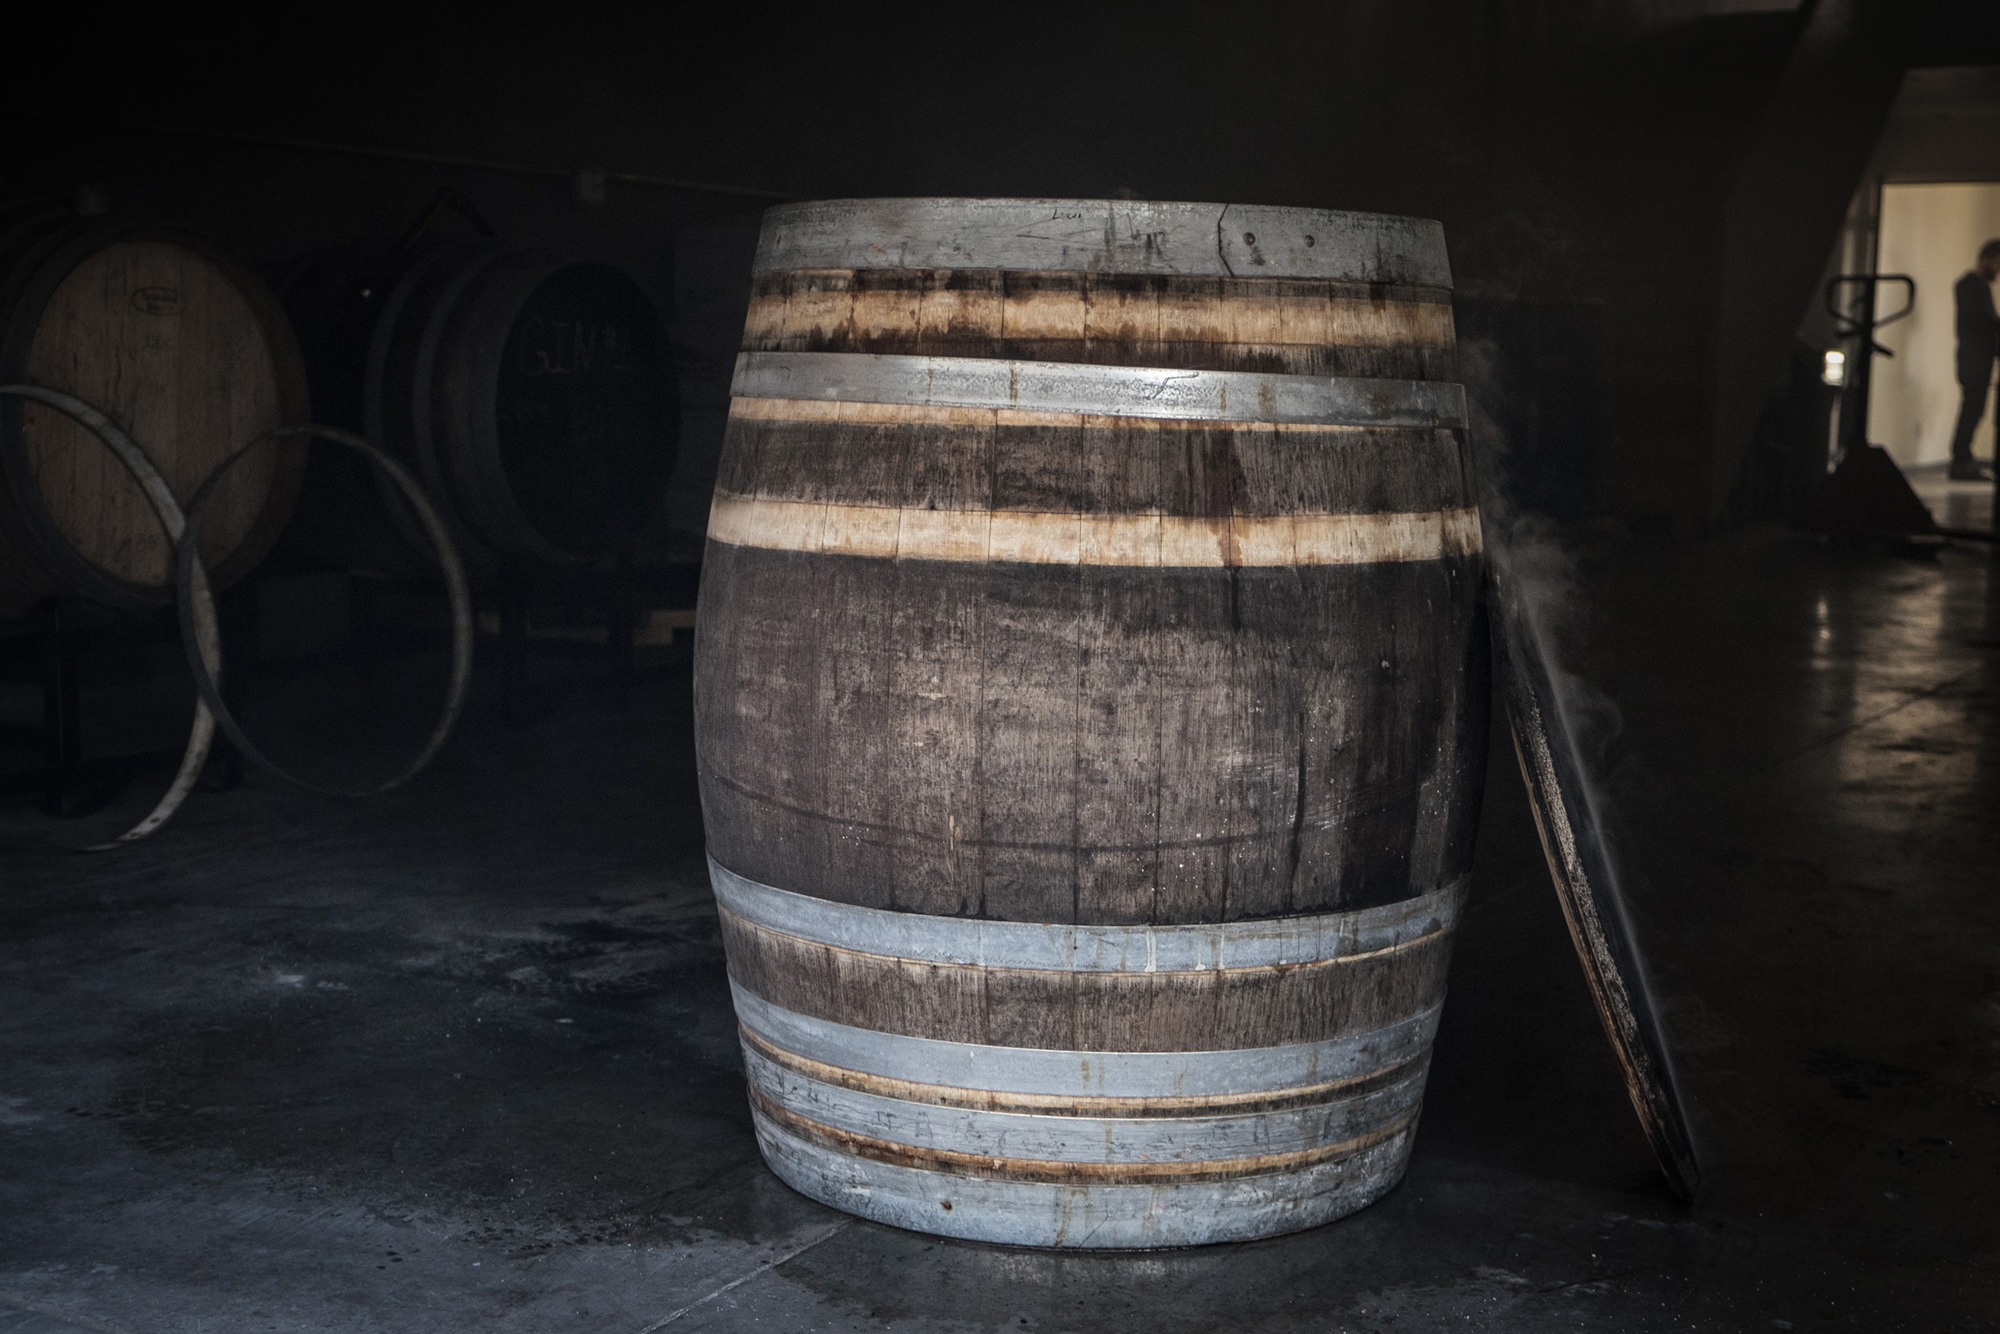 Beehive Distilling Small Batch Craft Gin Salt Lake City Utah 12